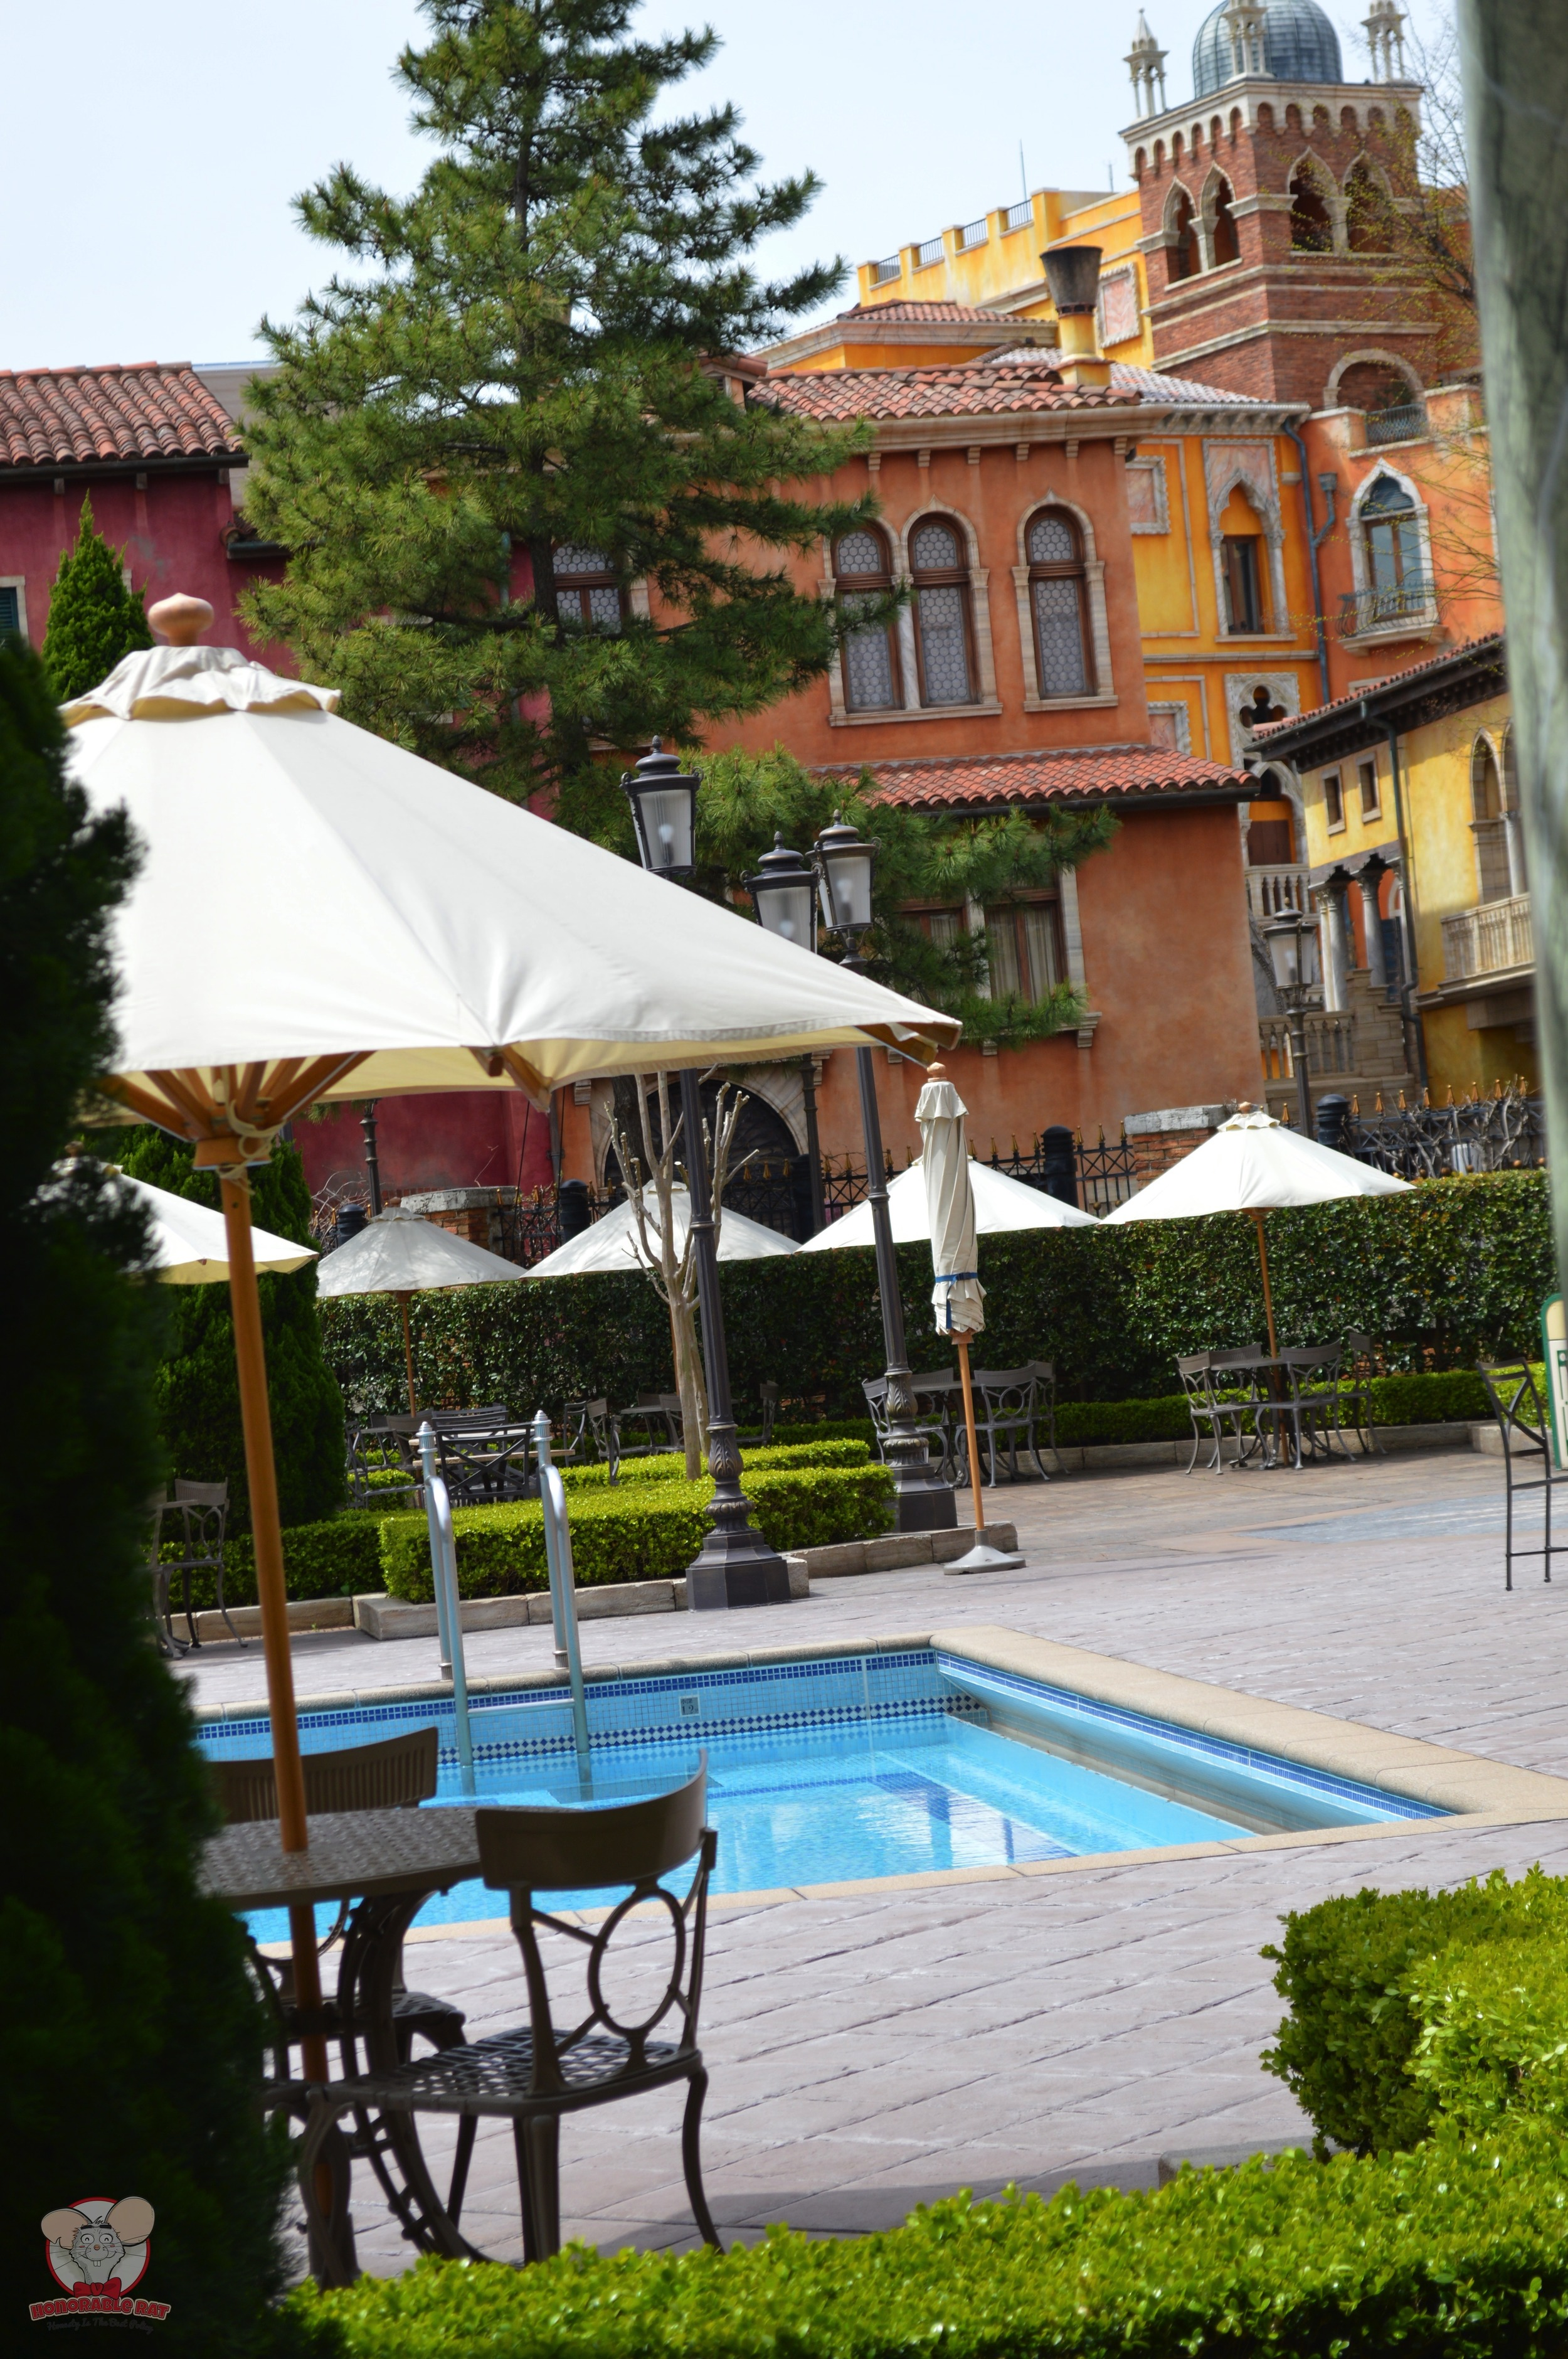 View of the pool from the patio